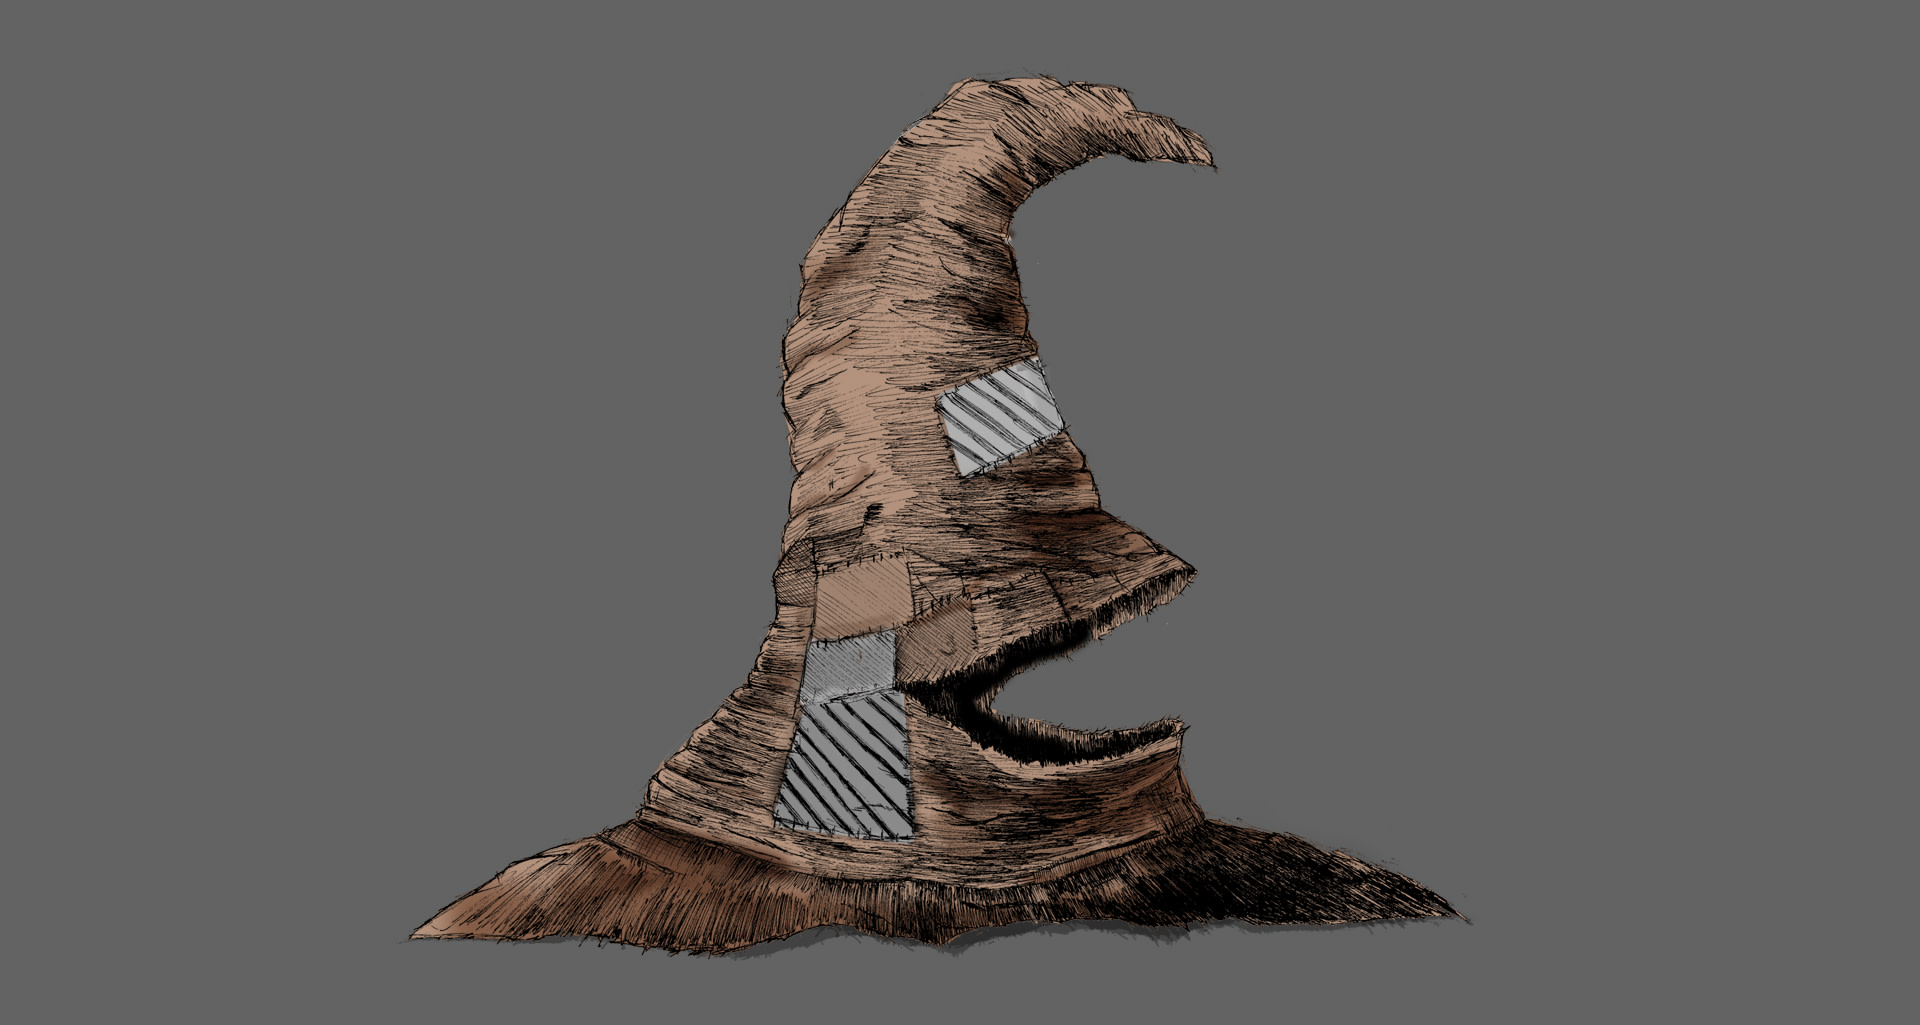 Sorting Hat Illustration grey background